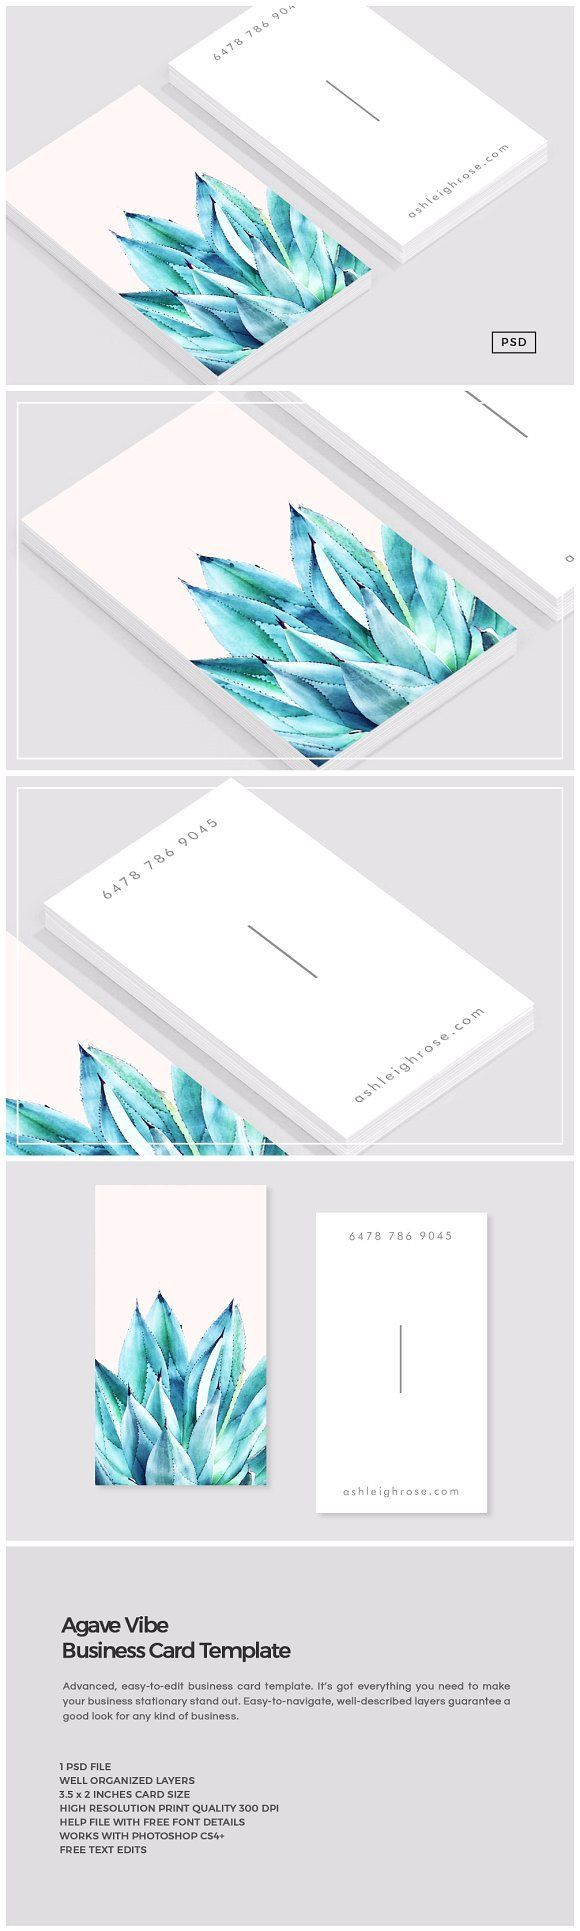 Best 25+ Free business card maker ideas on Pinterest | Free ...